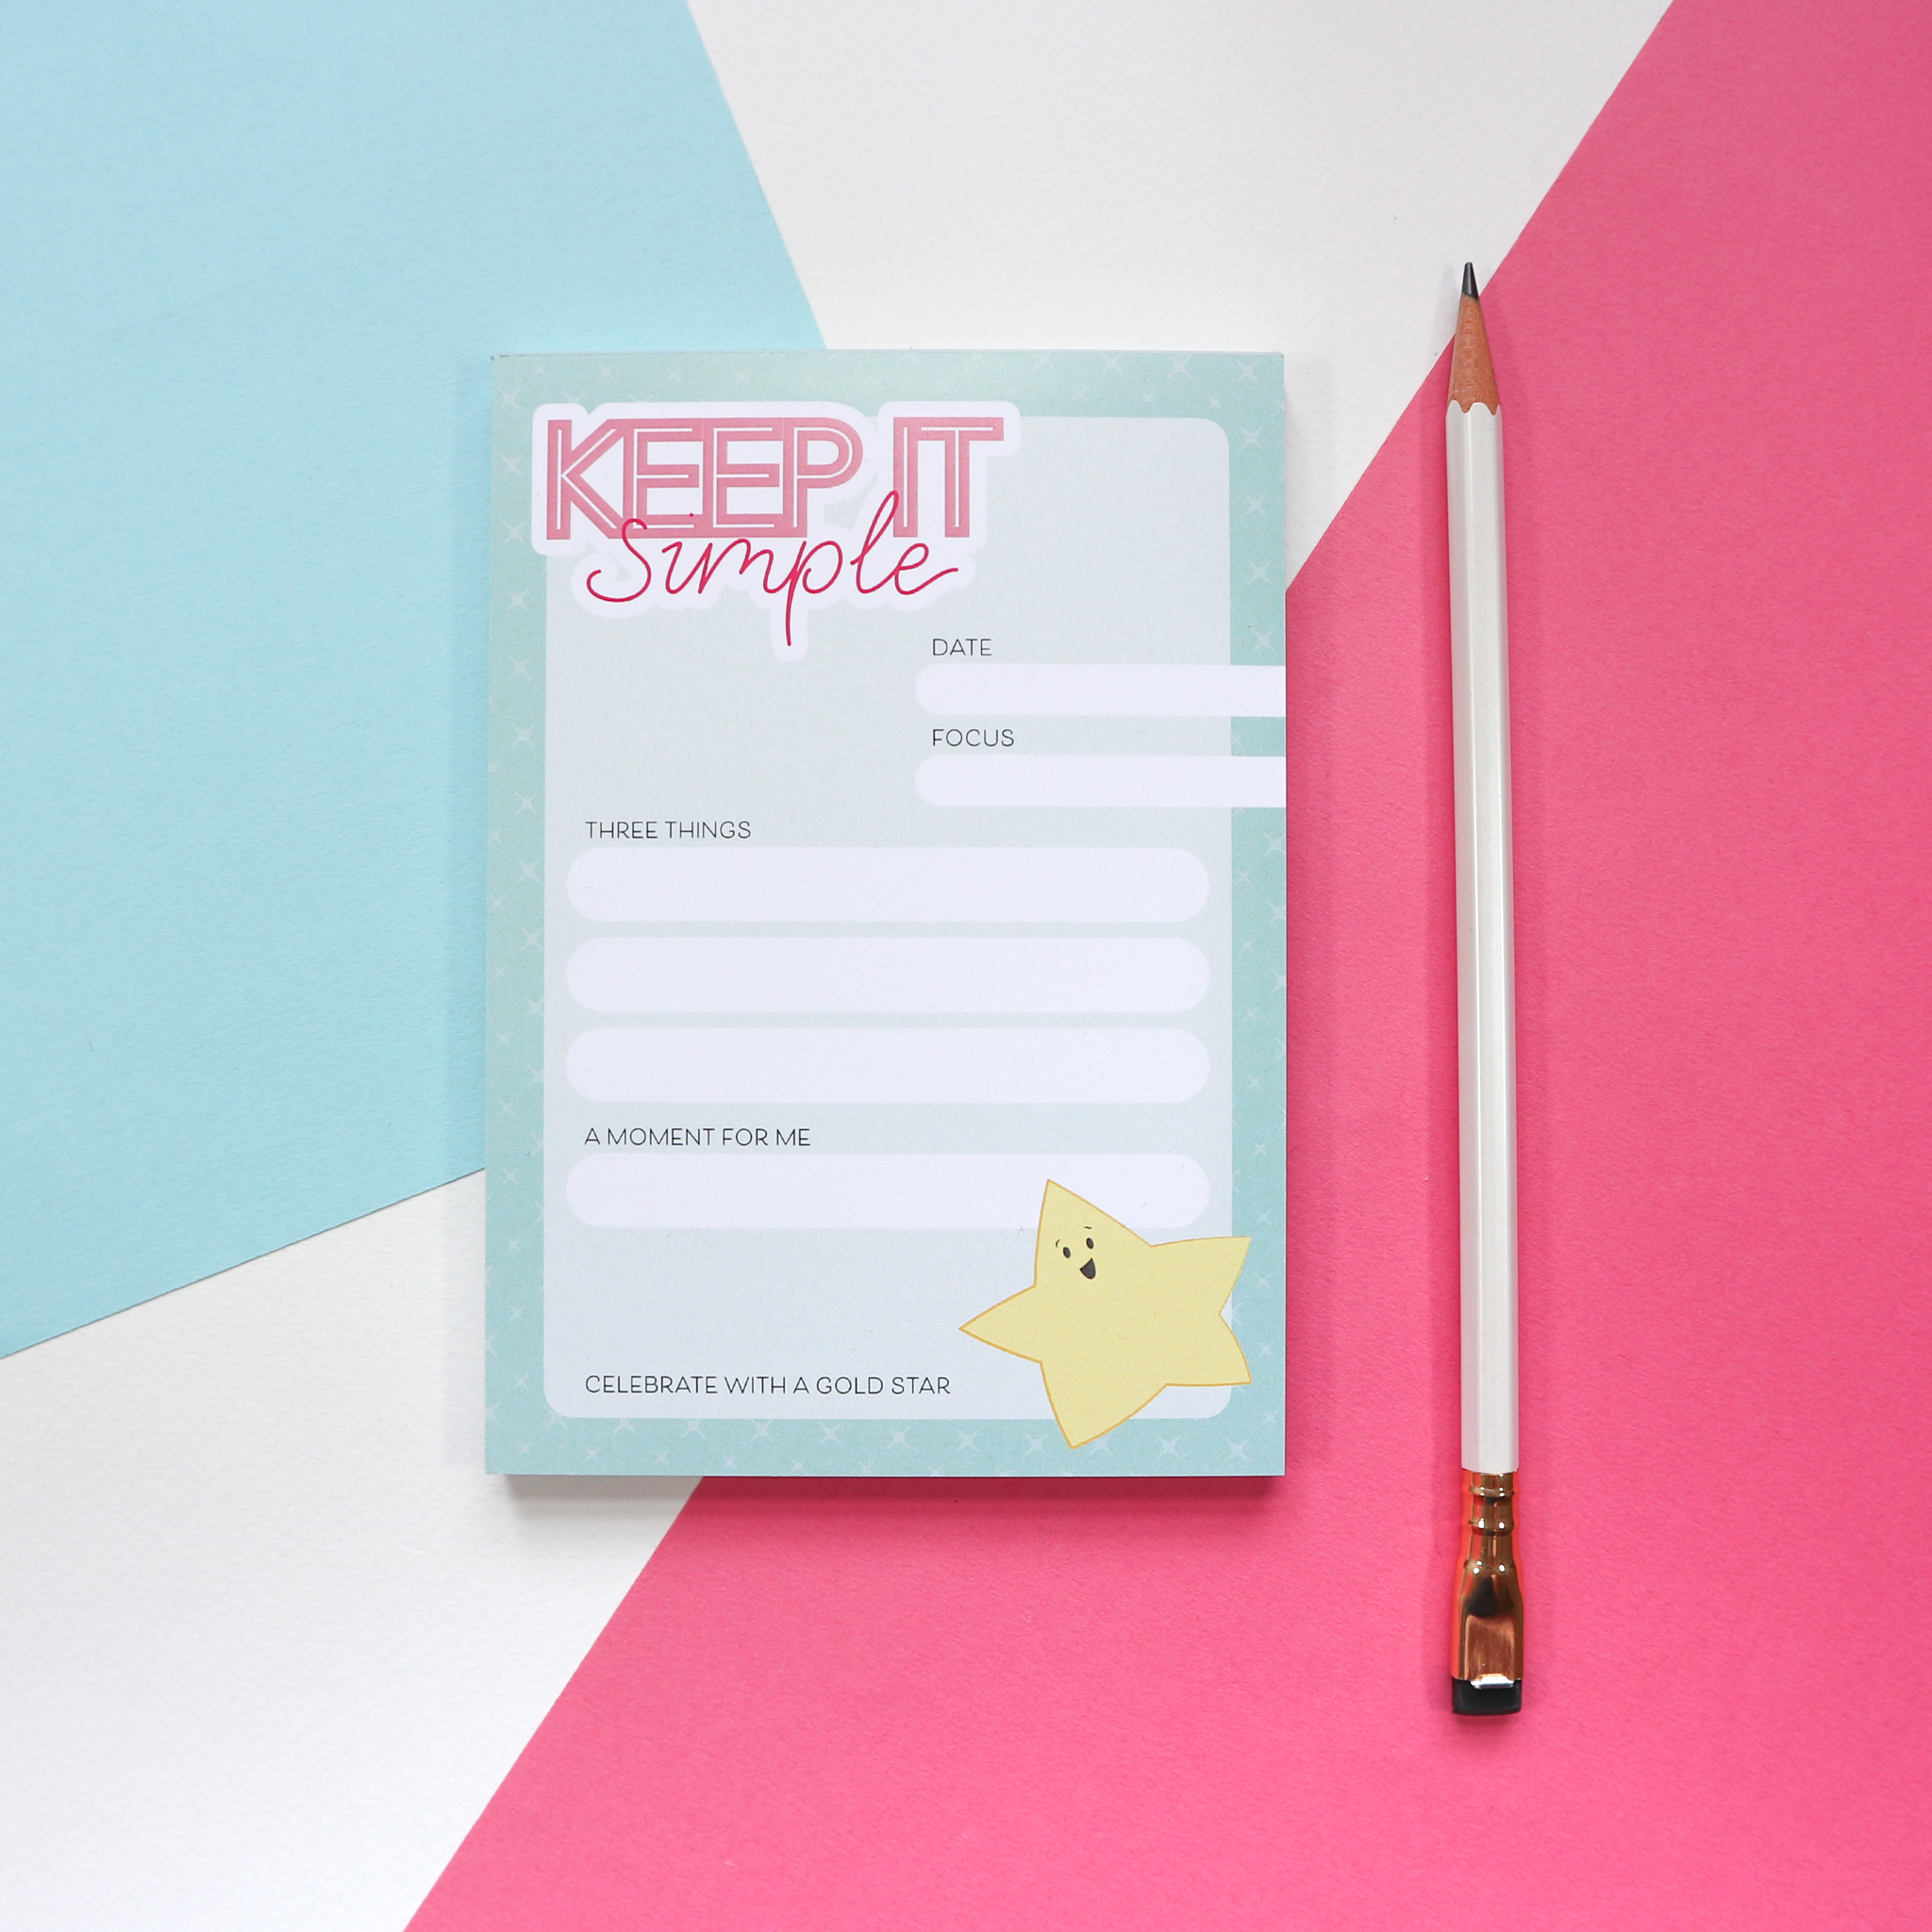 """A photo of an A6 notepad design with a mint green background and the words """"keep it simple"""" in the top corner. There is space for the date, focus for the day/week, then 3 to-list list items, """"a moment for me"""" and a smiley gold star at the bottom to celebrate your win(s) for the day/week. The notepad sits against a pink, white and blue background and is styled with a pencil."""